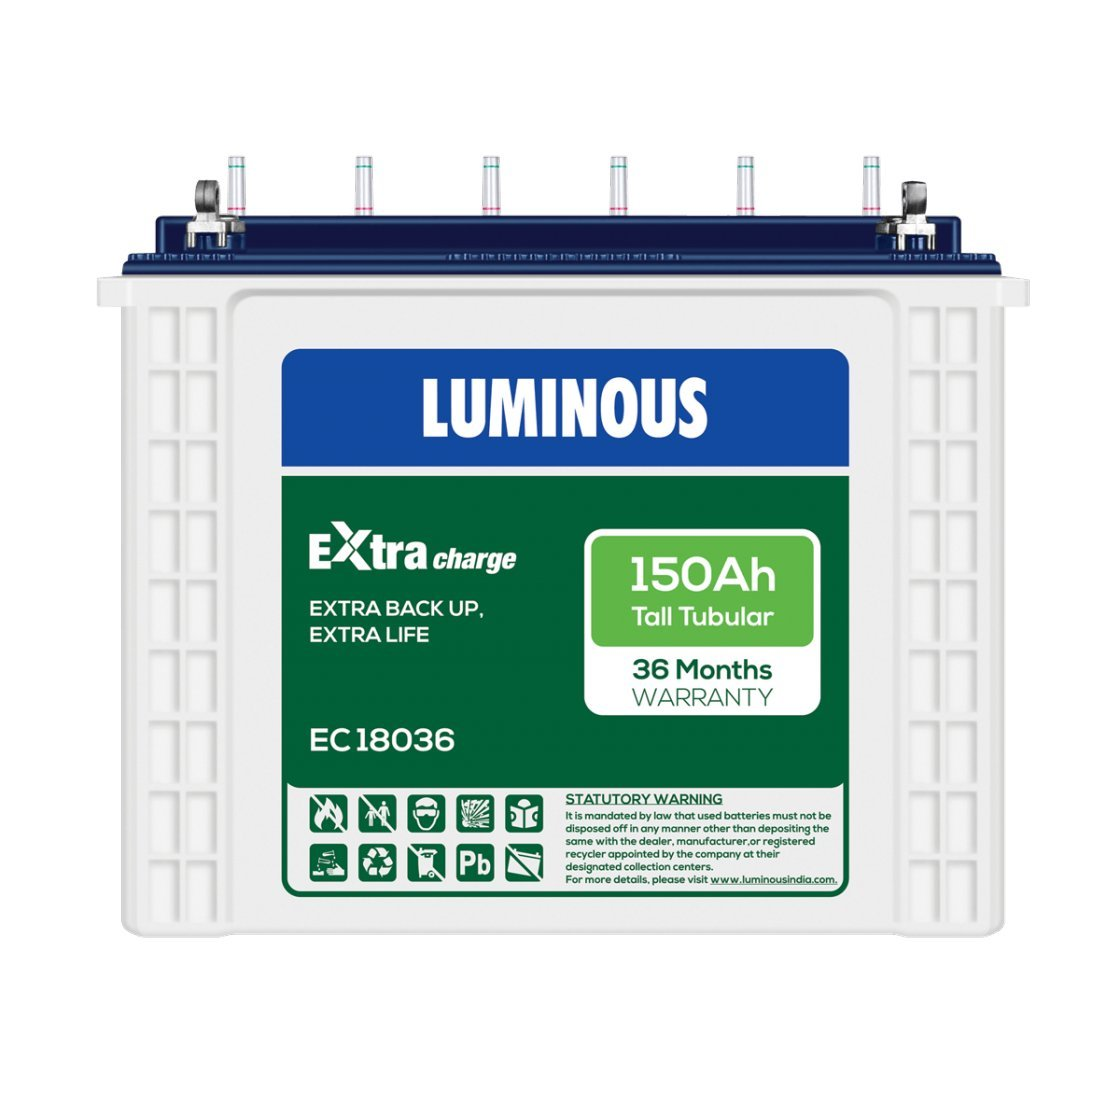 Luminous EC18036 150Ah Battery